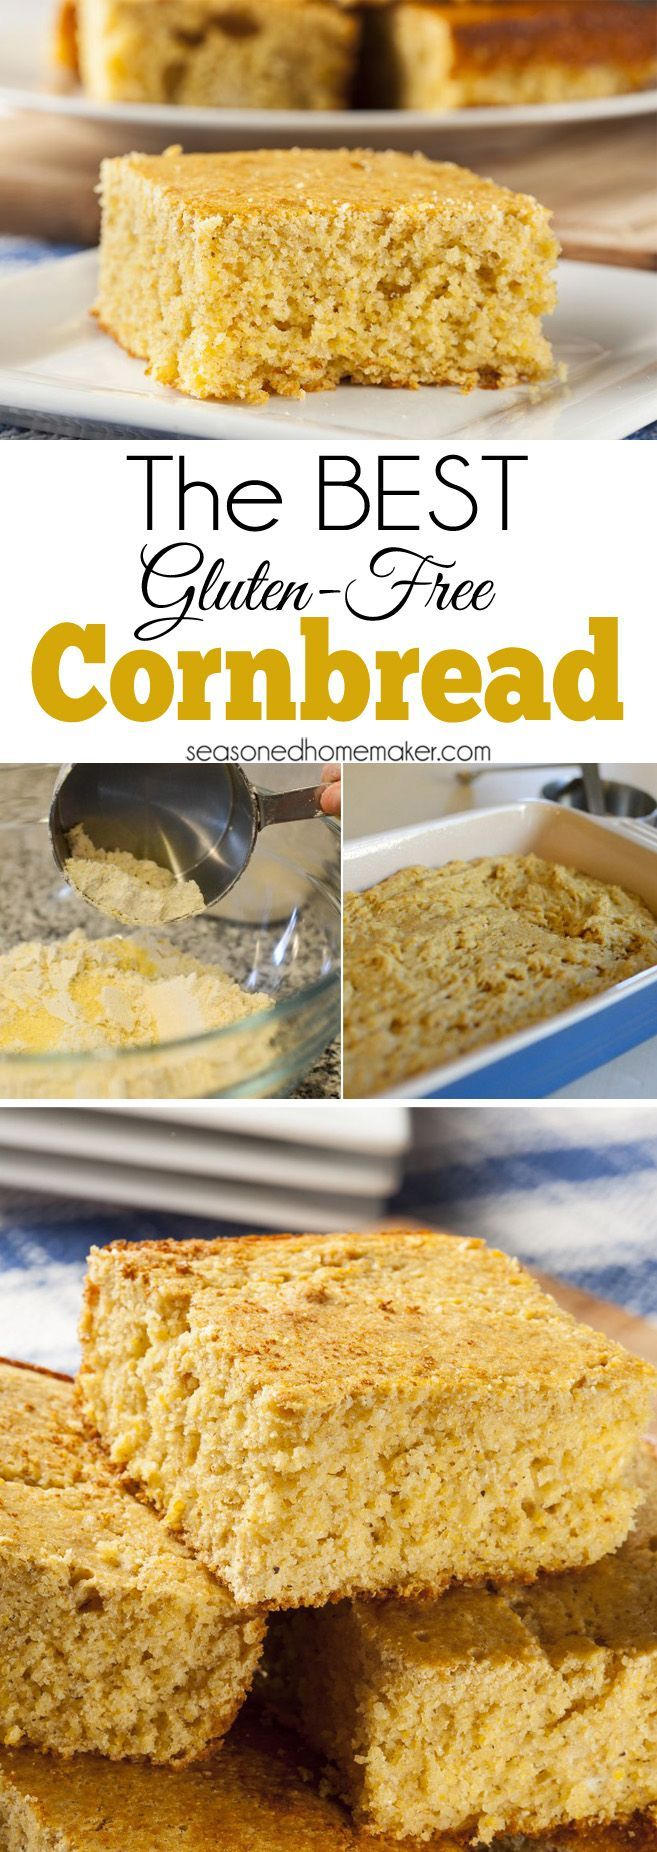 The BEST Gluten-Free Cornbread Recipe. I've been perfecting gluten-free cornbread for years and have finally created the most delicious, moist gluten-free cornbread you'll ever eat.